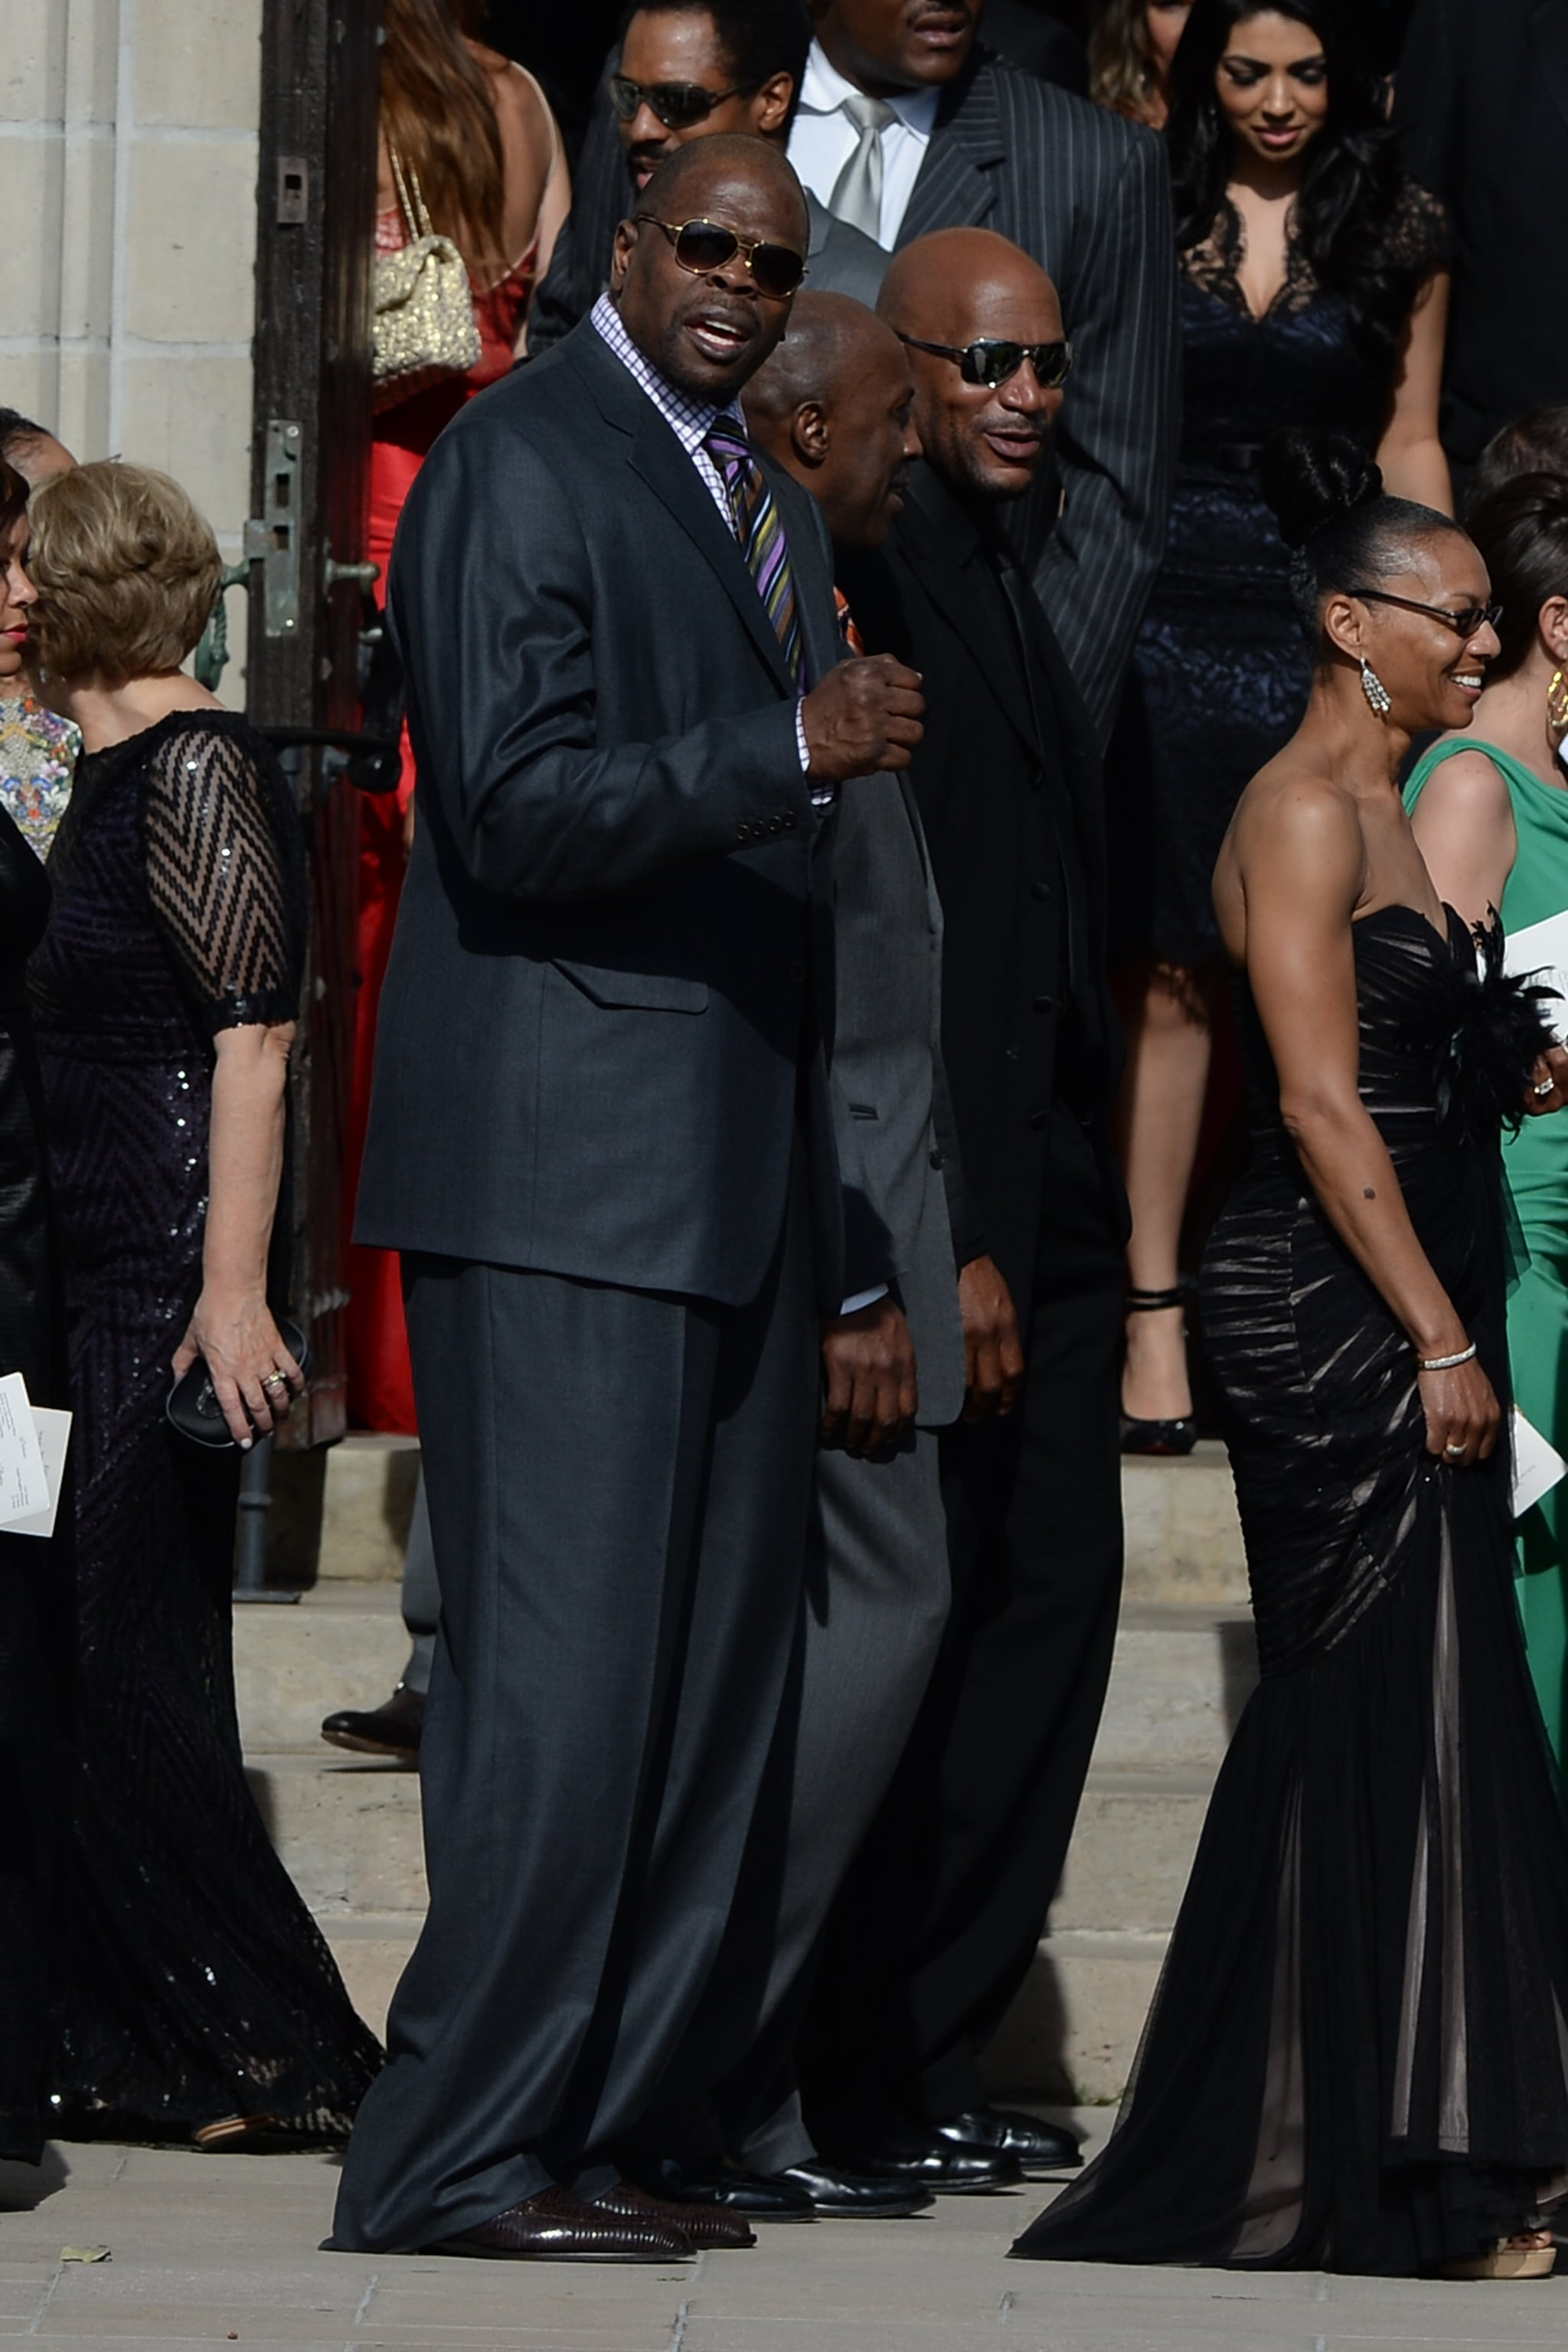 Hall of Fame basketball star Patrick Ewing attended Michael Jordan's wedding.